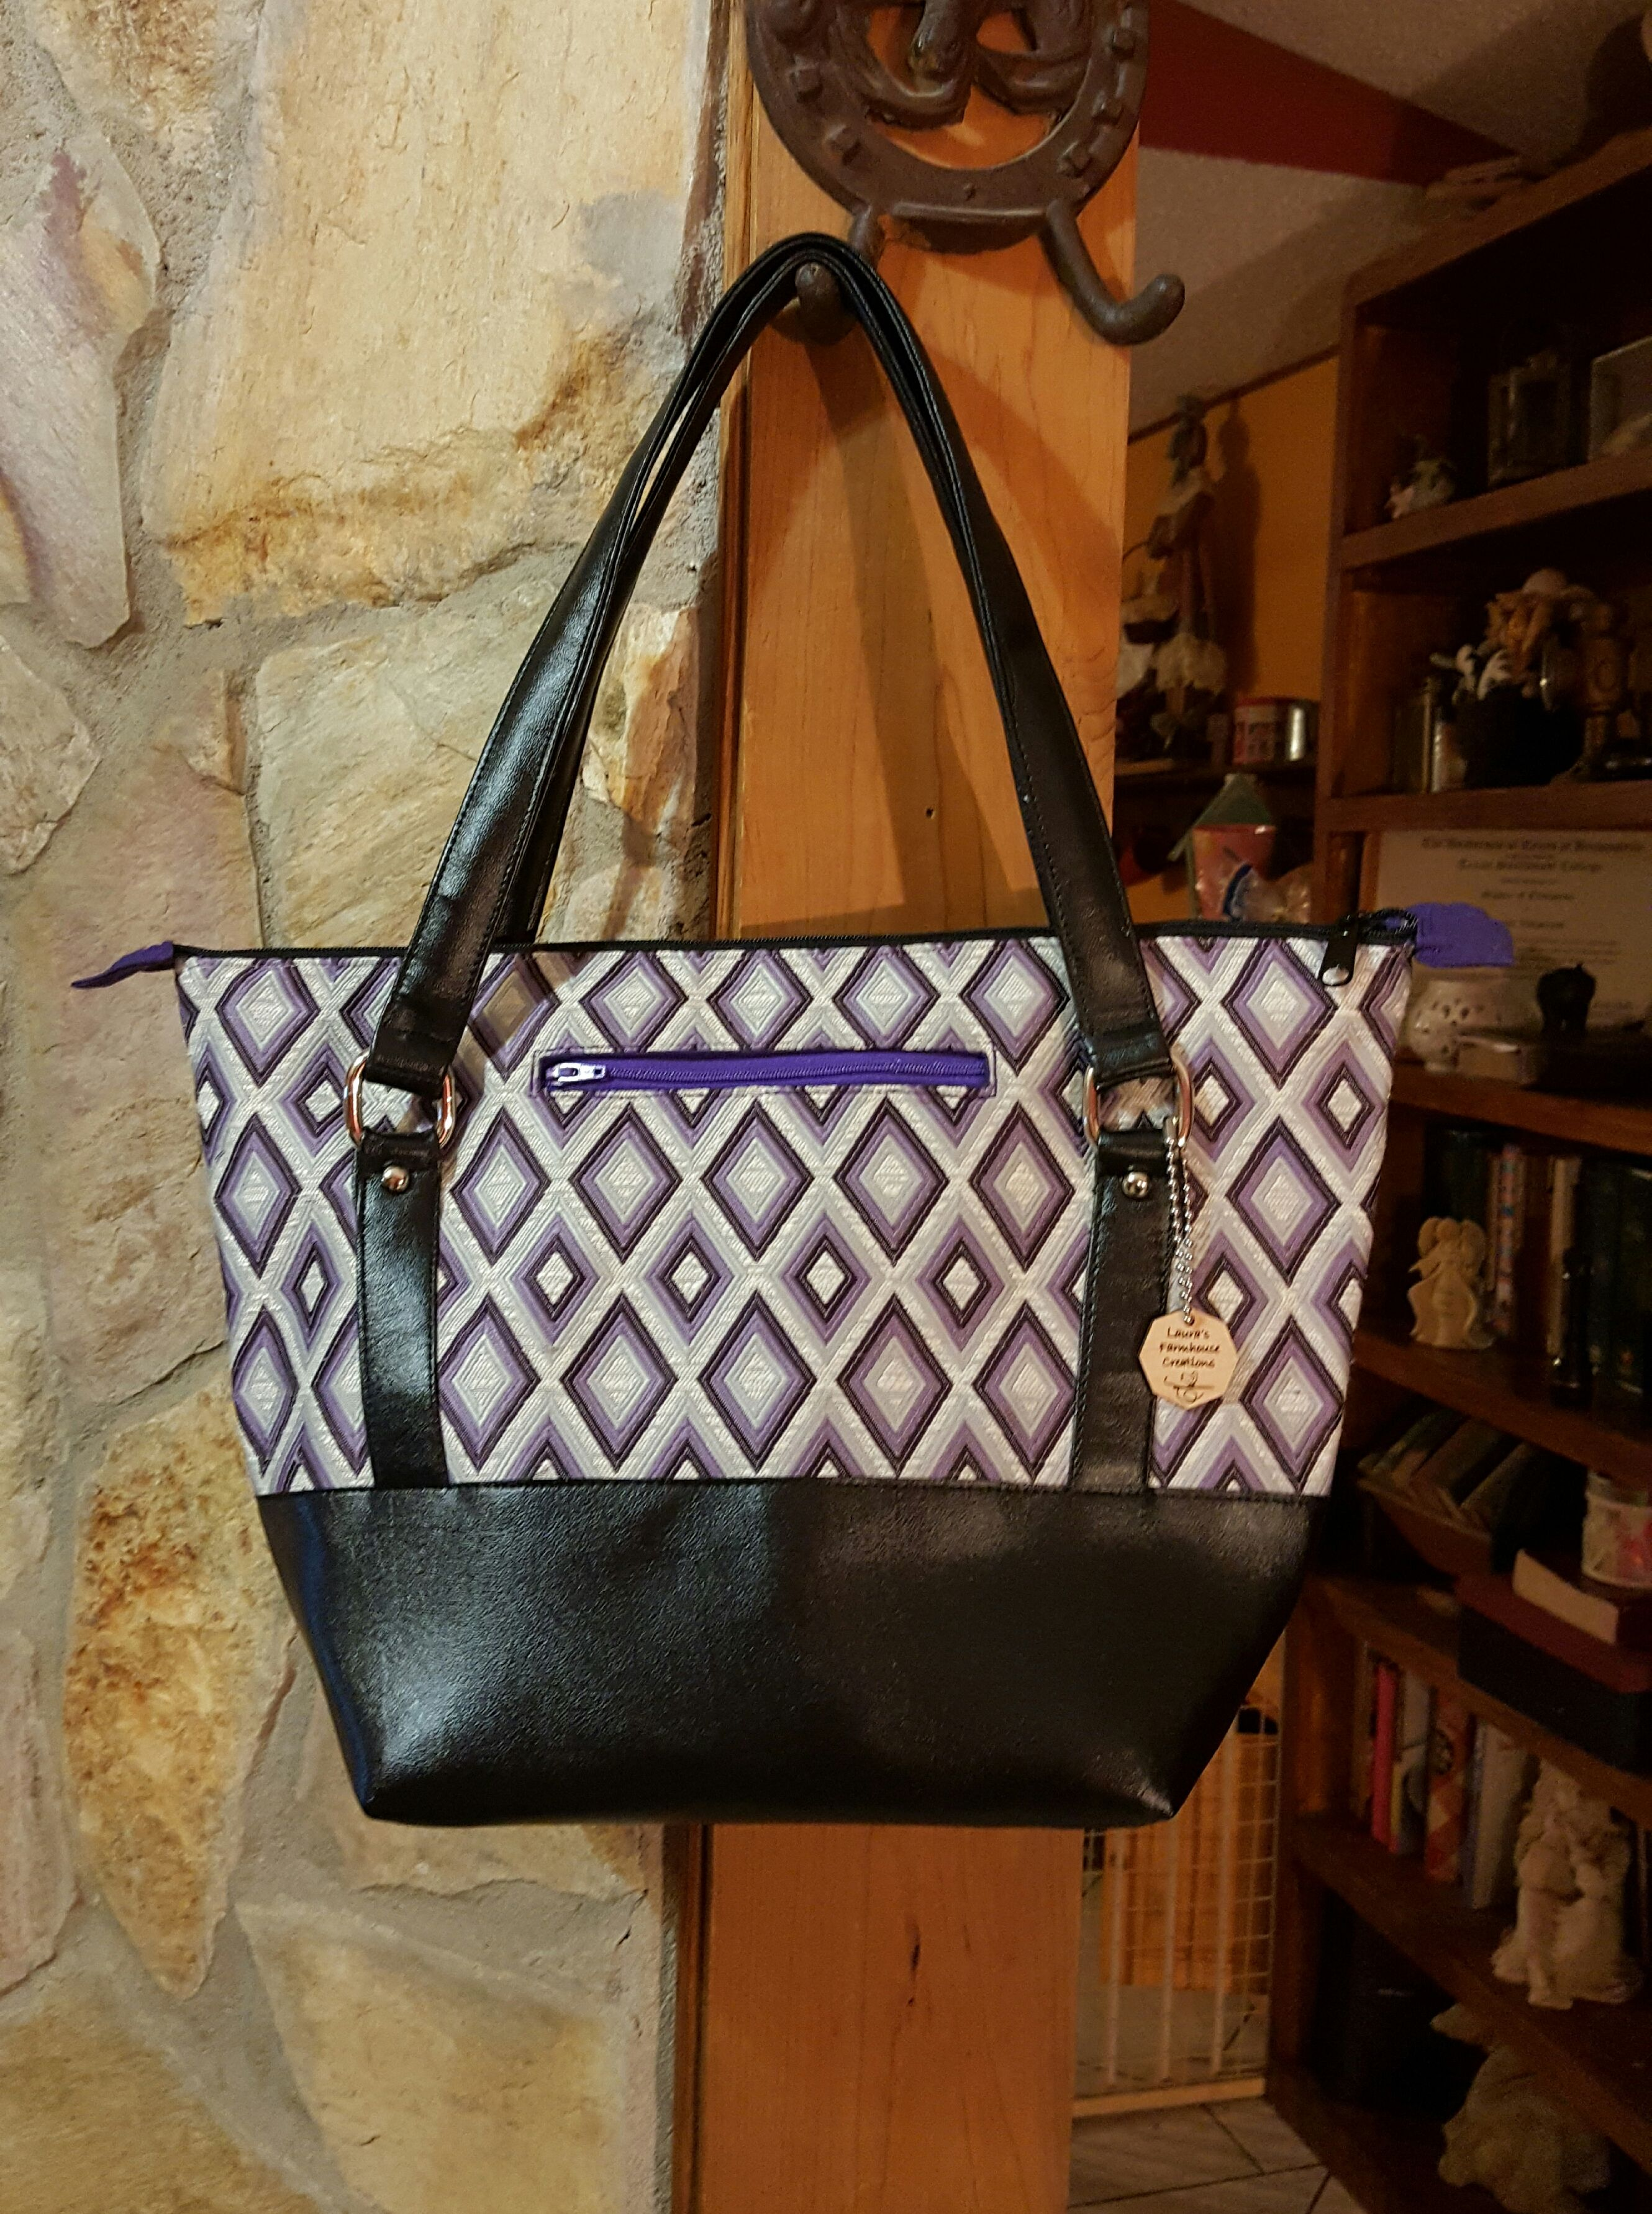 Pin by Laura's Farmhouse Creations on Bags, purses, and